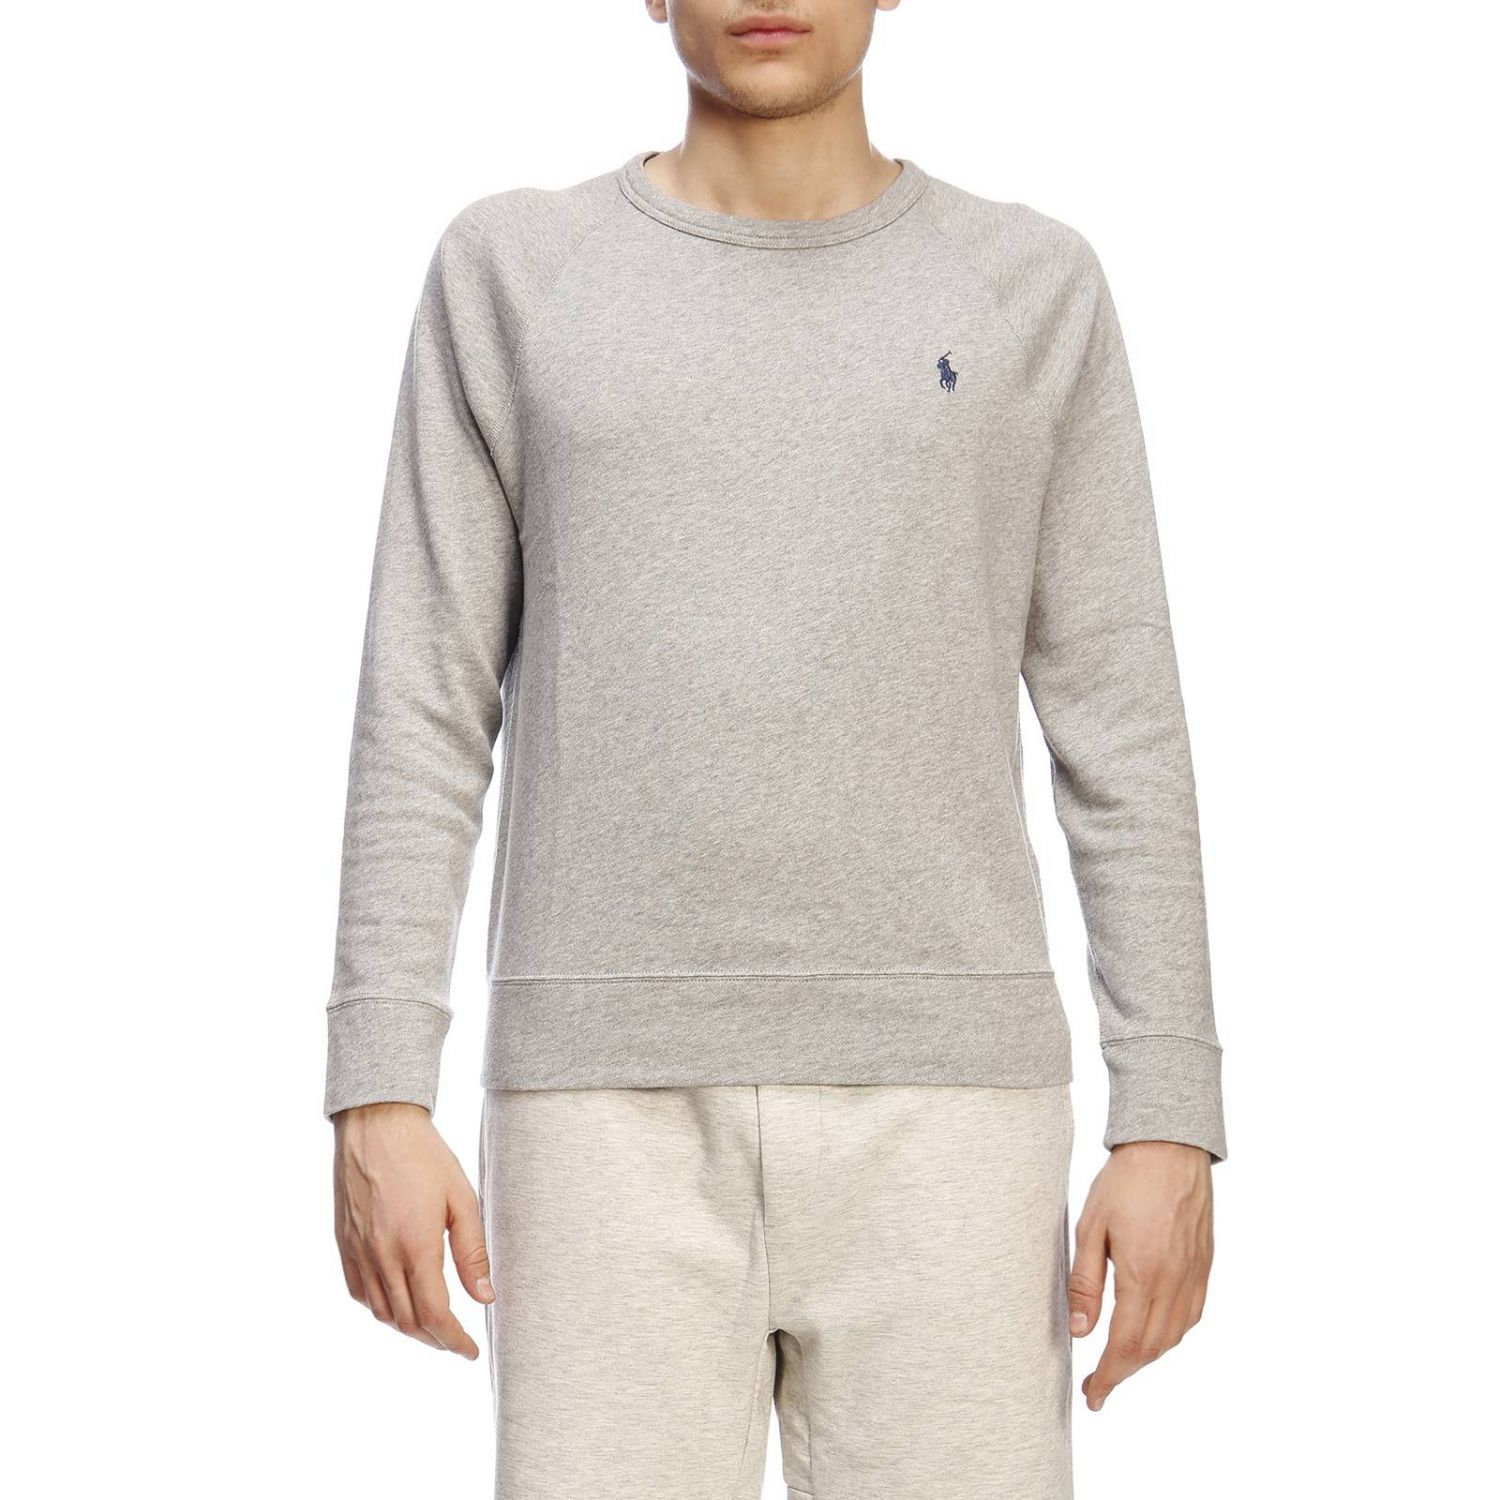 Pull homme Polo Ralph Lauren gris 1